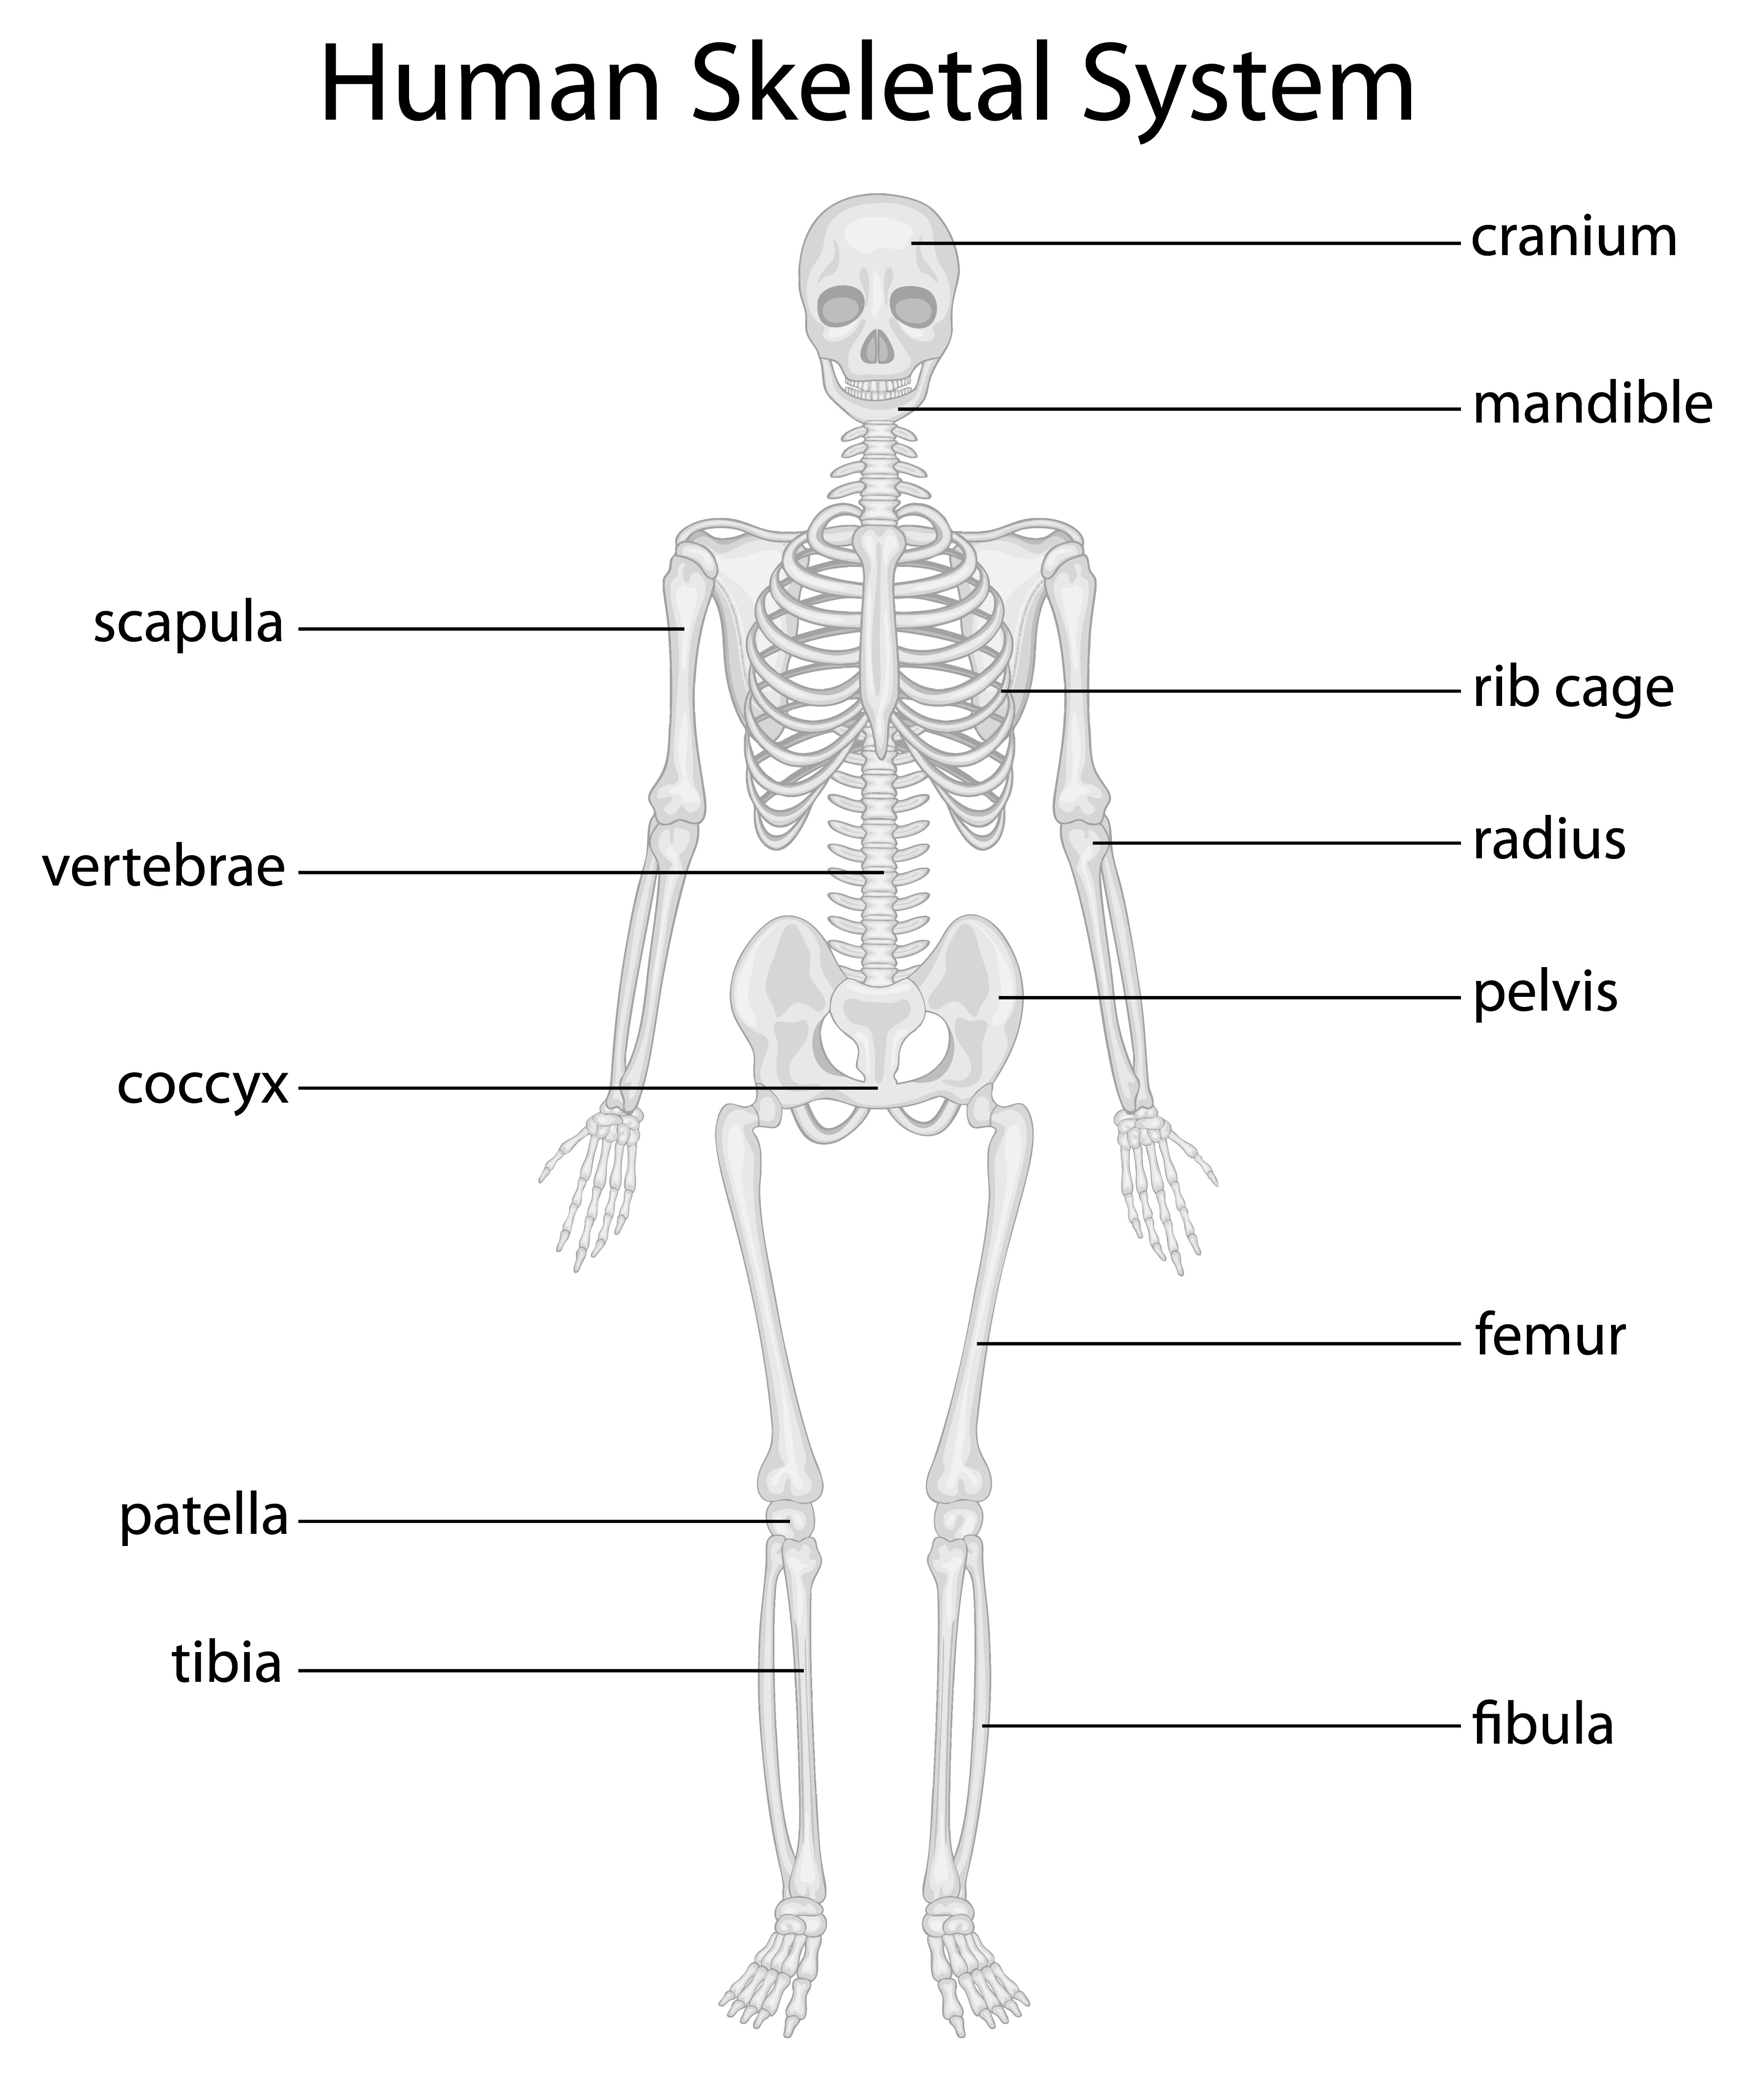 Skeletal System Free Vector Art